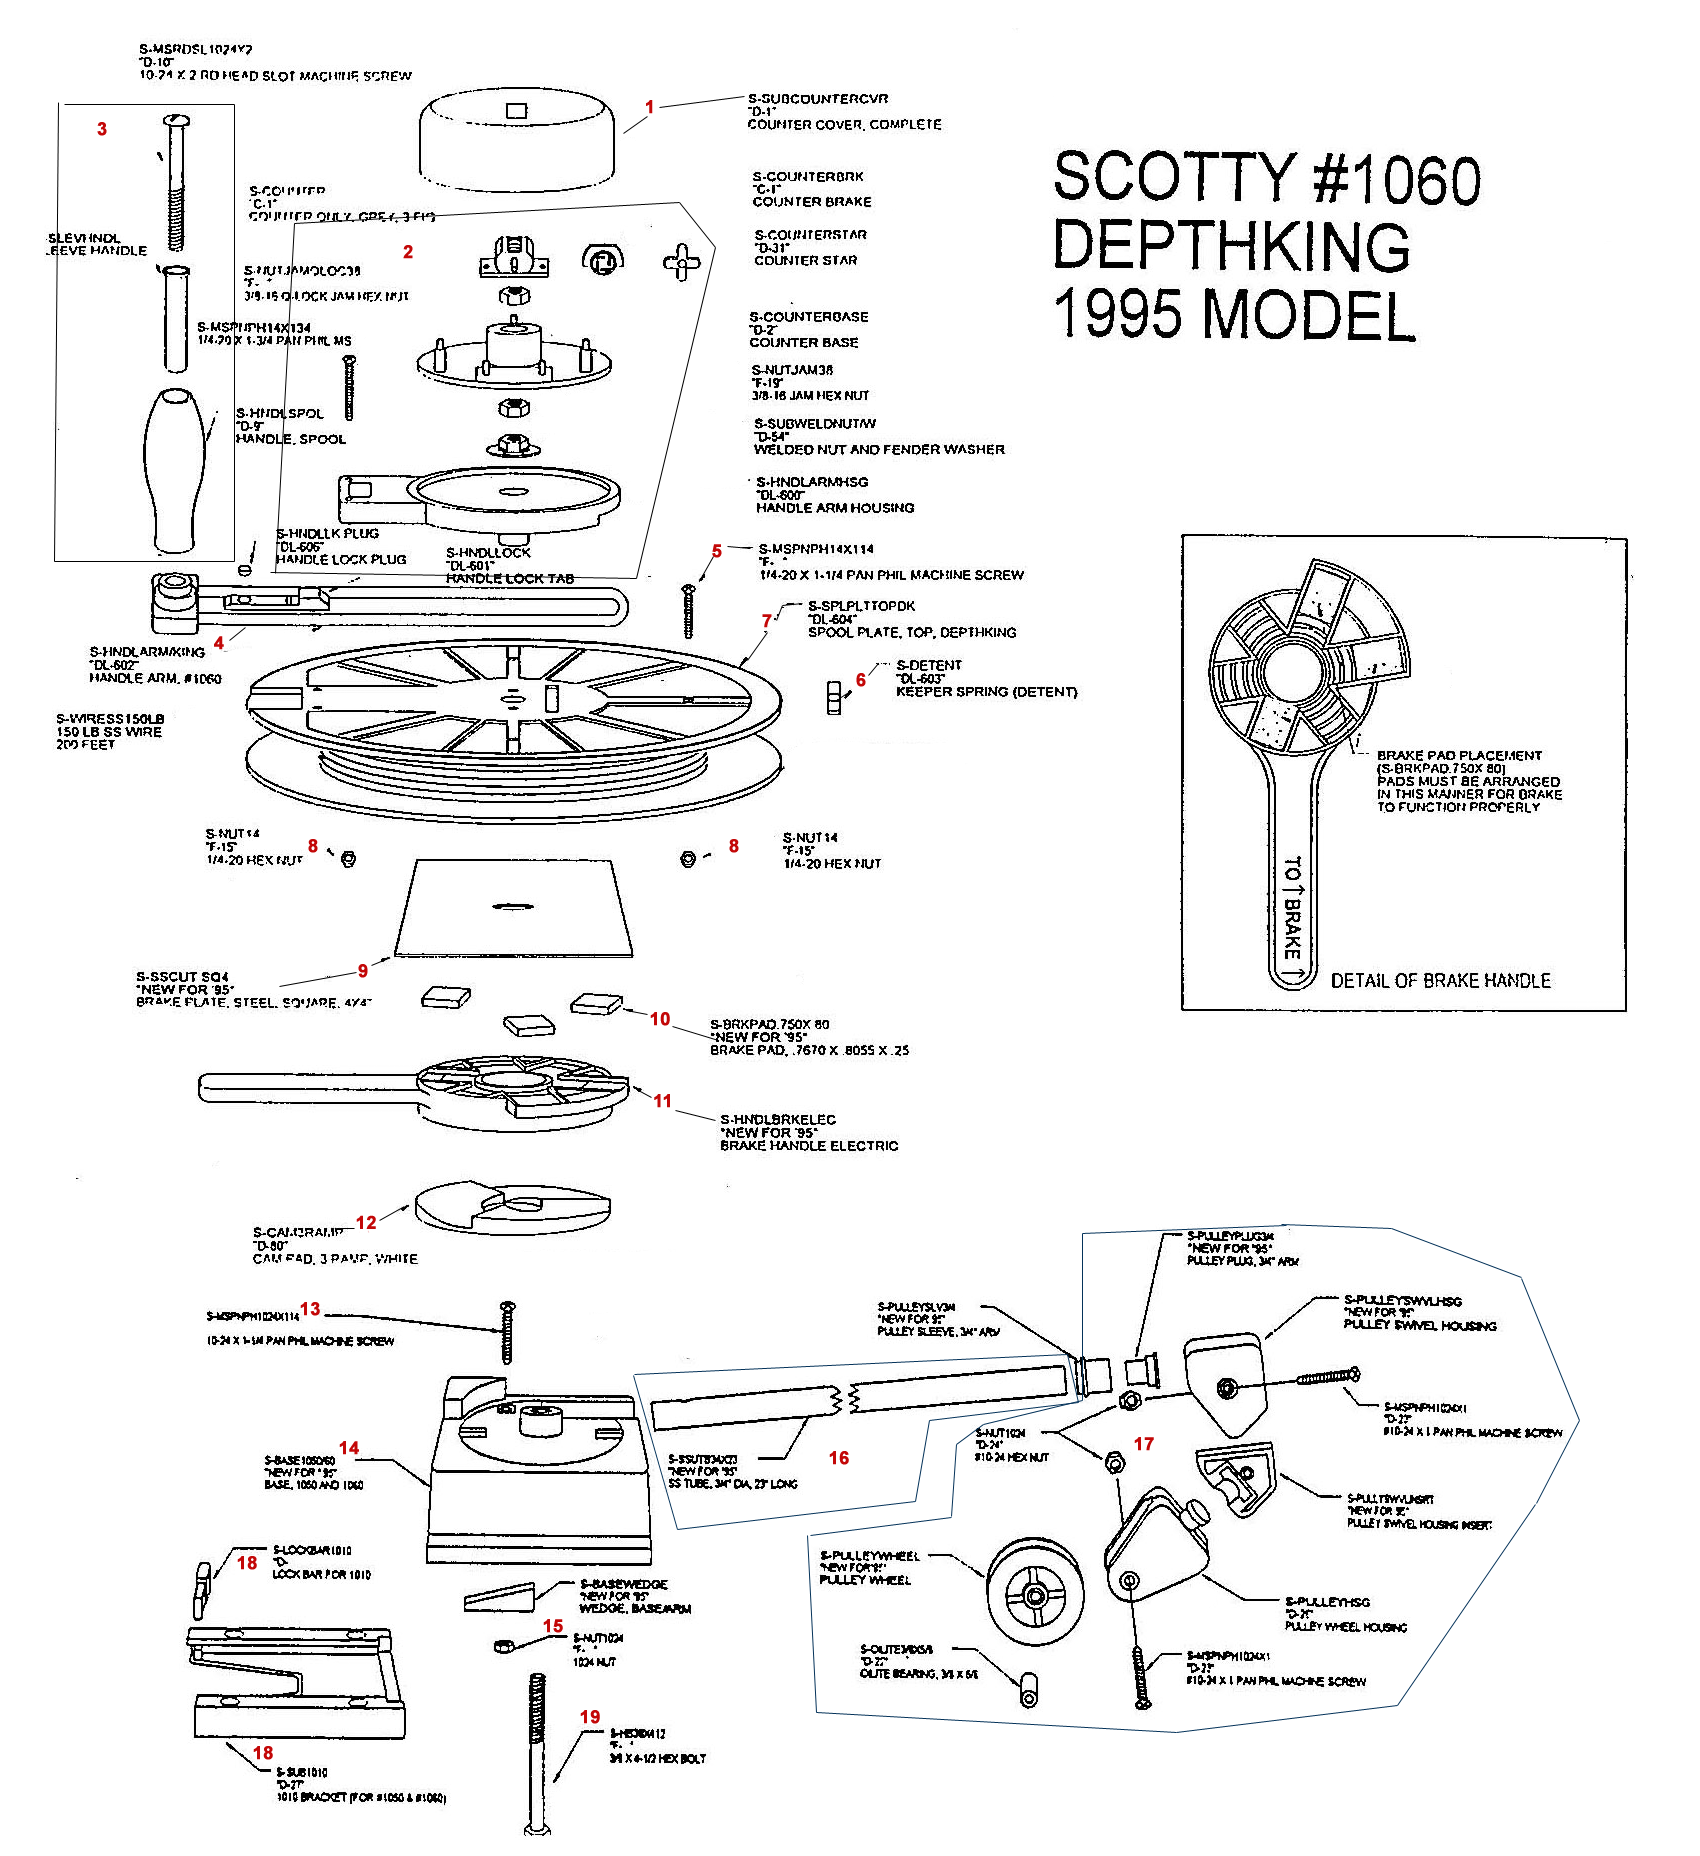 Scotty_1060_Manual vision spinner wiring diagram vision twist wiring diagram, vision vision spinner 2 wiring diagram at bayanpartner.co